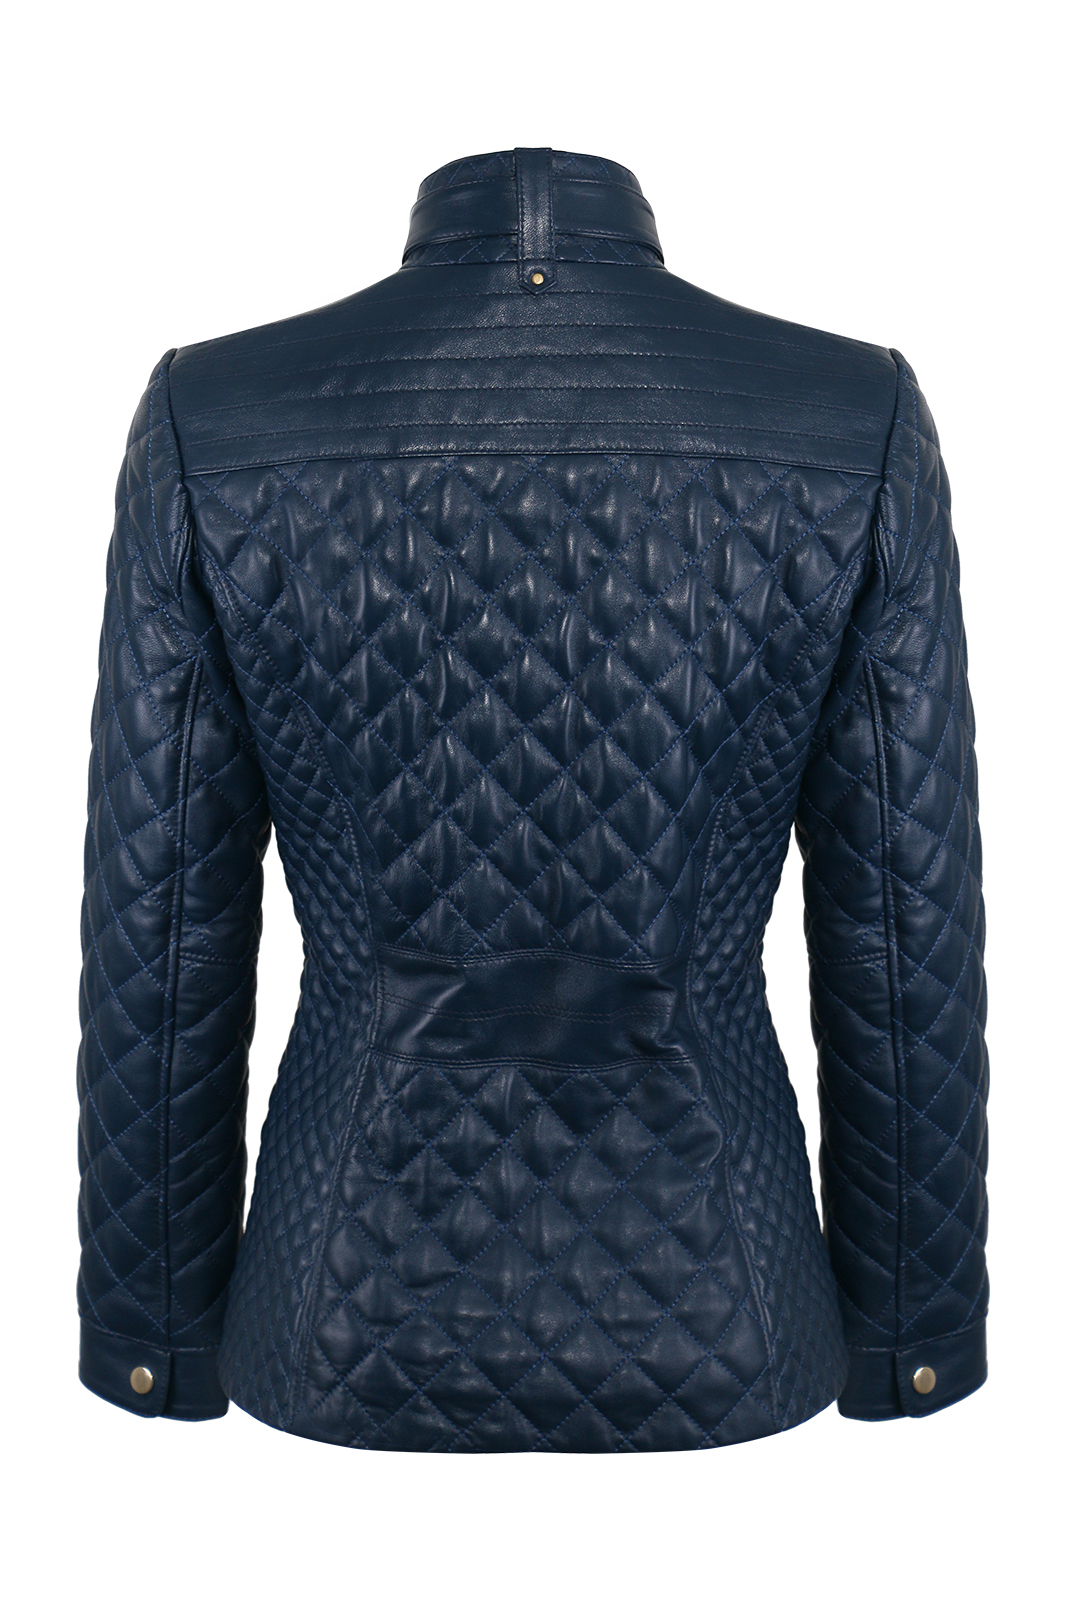 IPAWDUNNA Dark Blue Leather Jacket